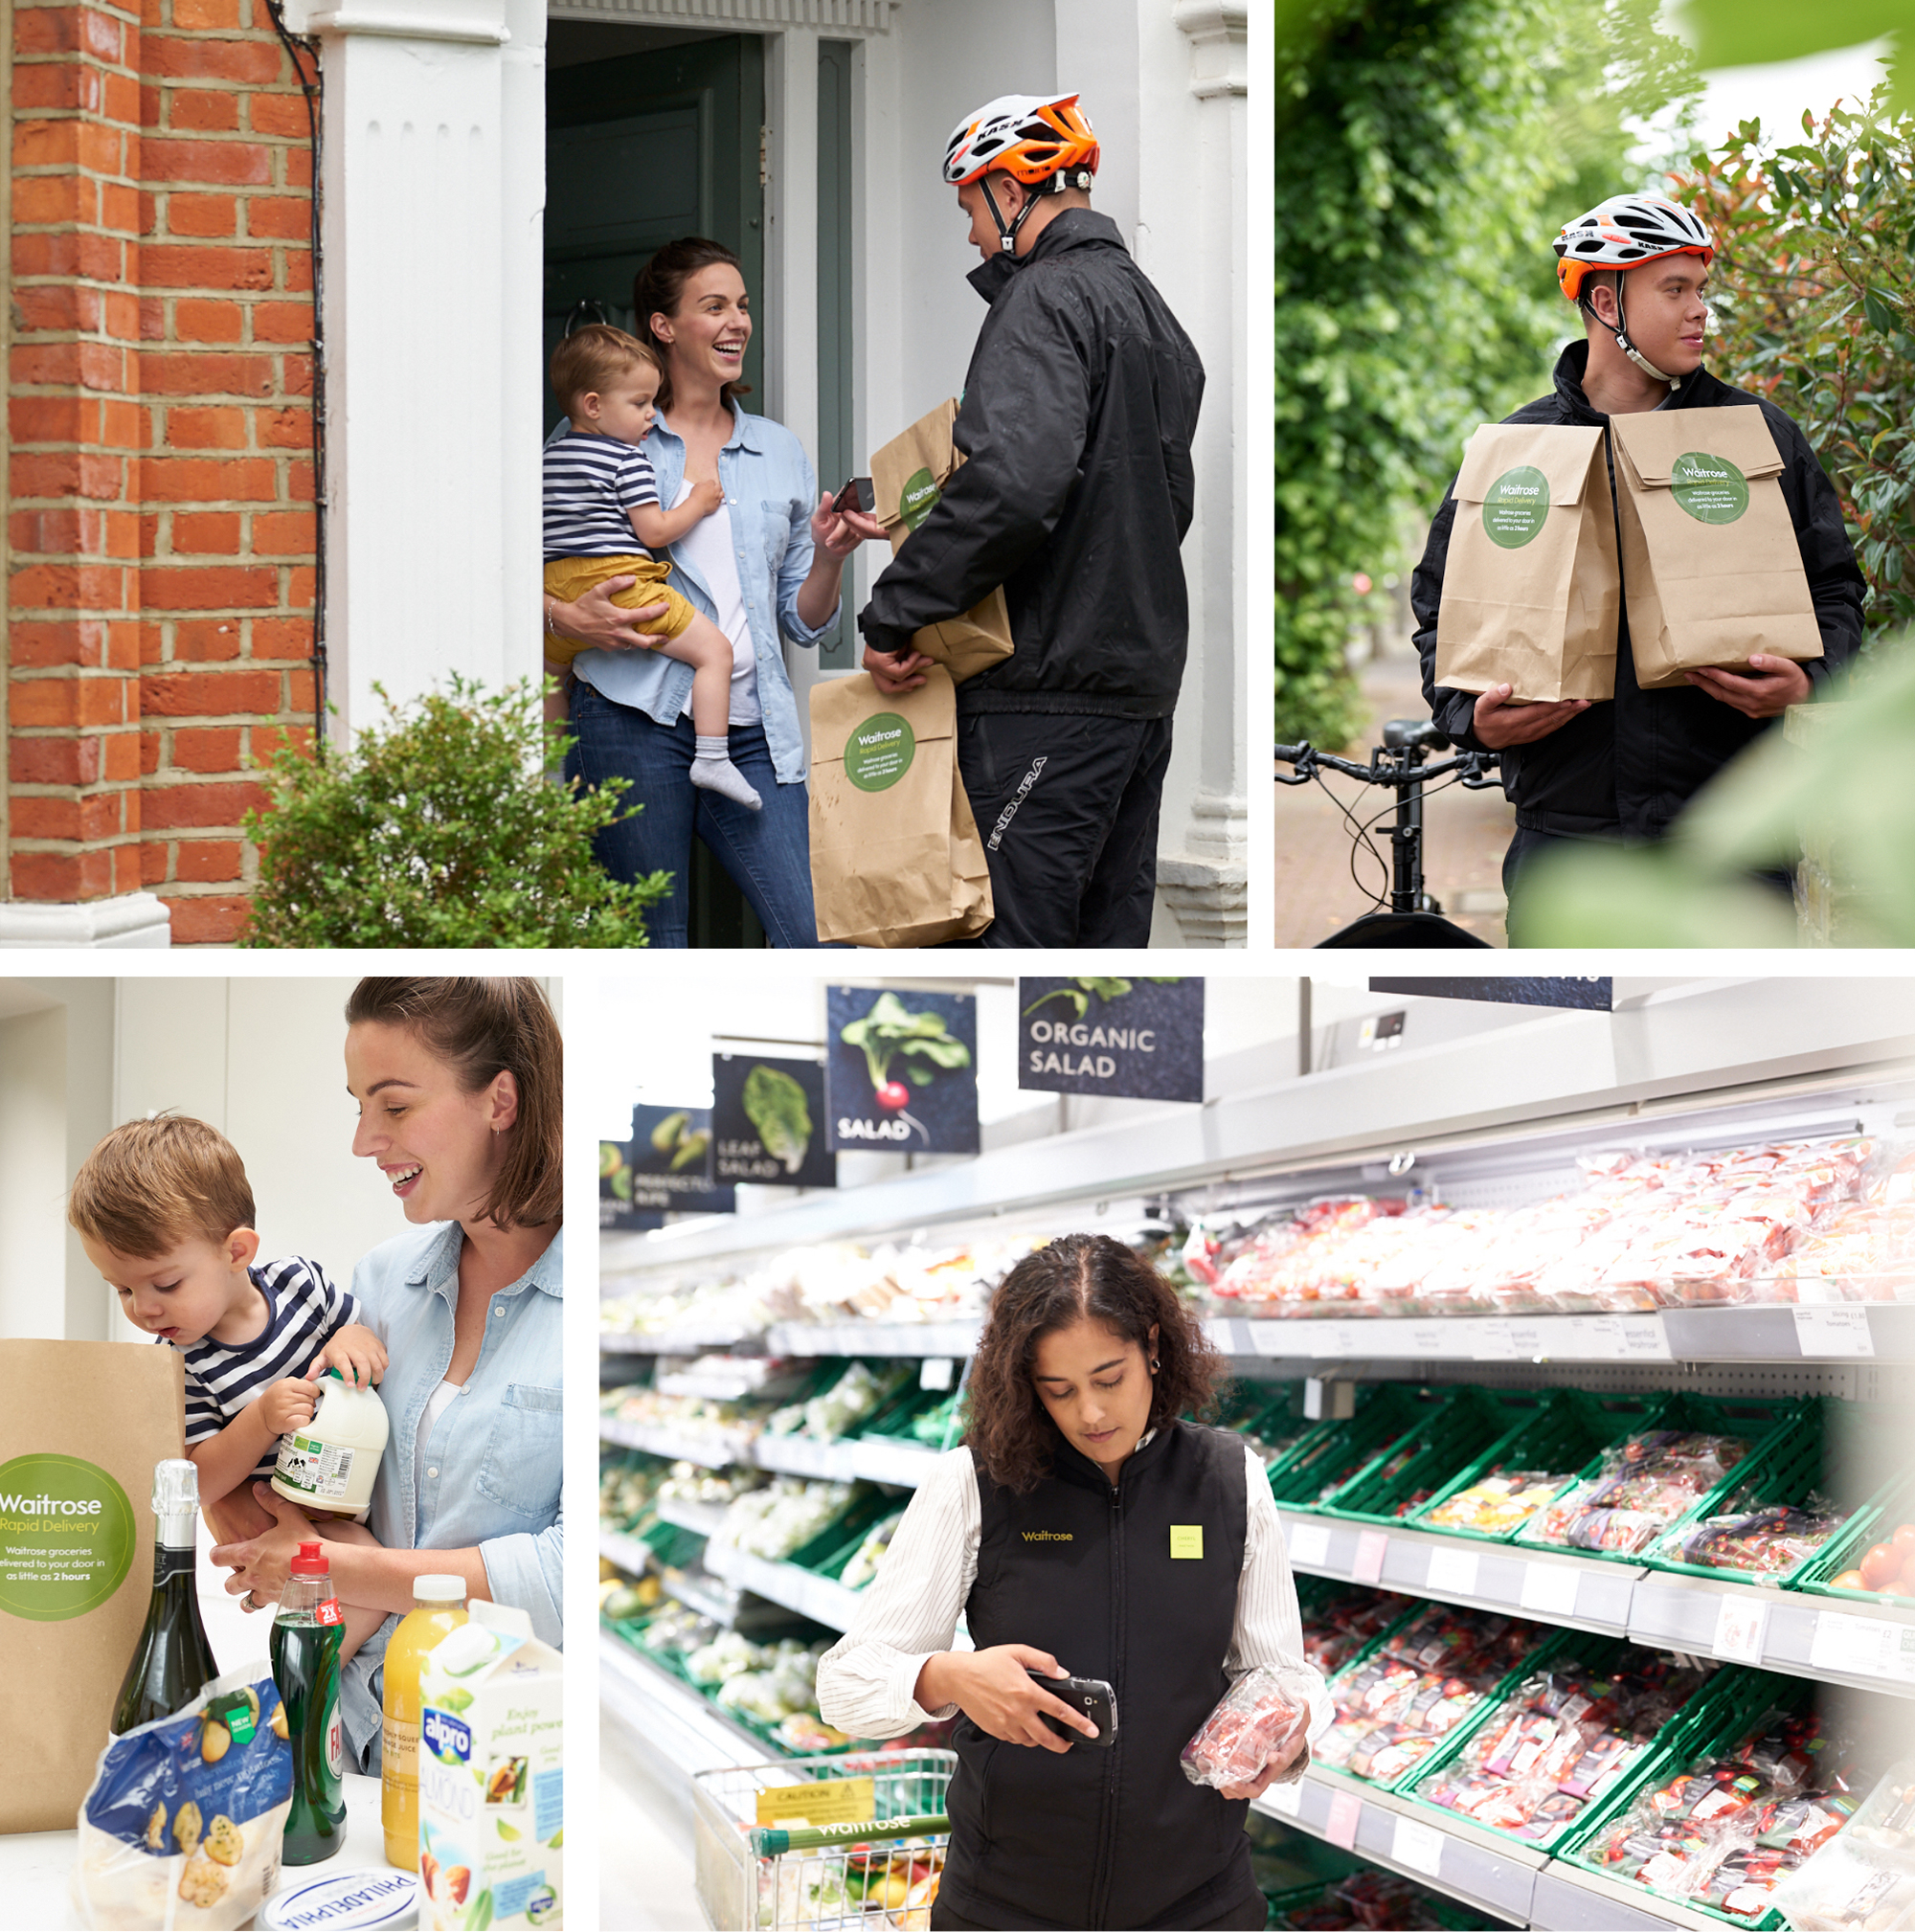 man delivering waitrose food to a family, woman scanning code of a produce bag